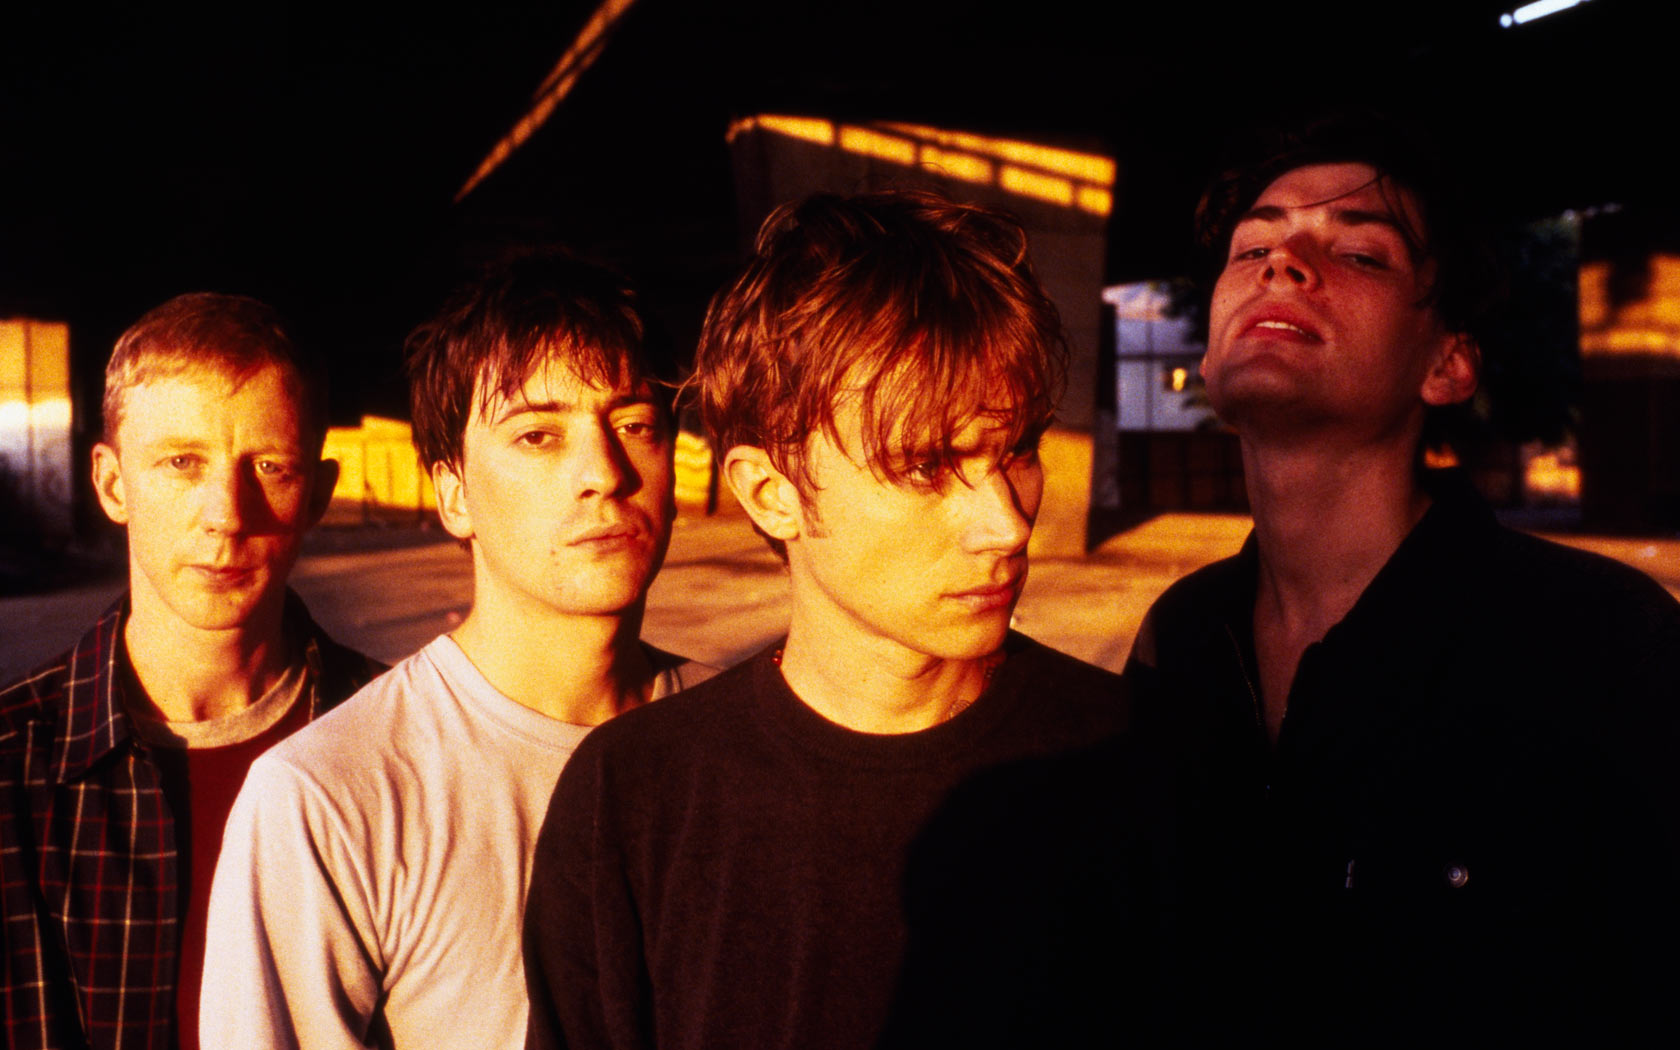 blur Blur is the fifth studio album by the english rock band of the same name, released on 10 february 1997 by food records blur had previously been broadly critical of american popular culture and their previous albums had become associated with the britpop movement, particularly parklife (1994.